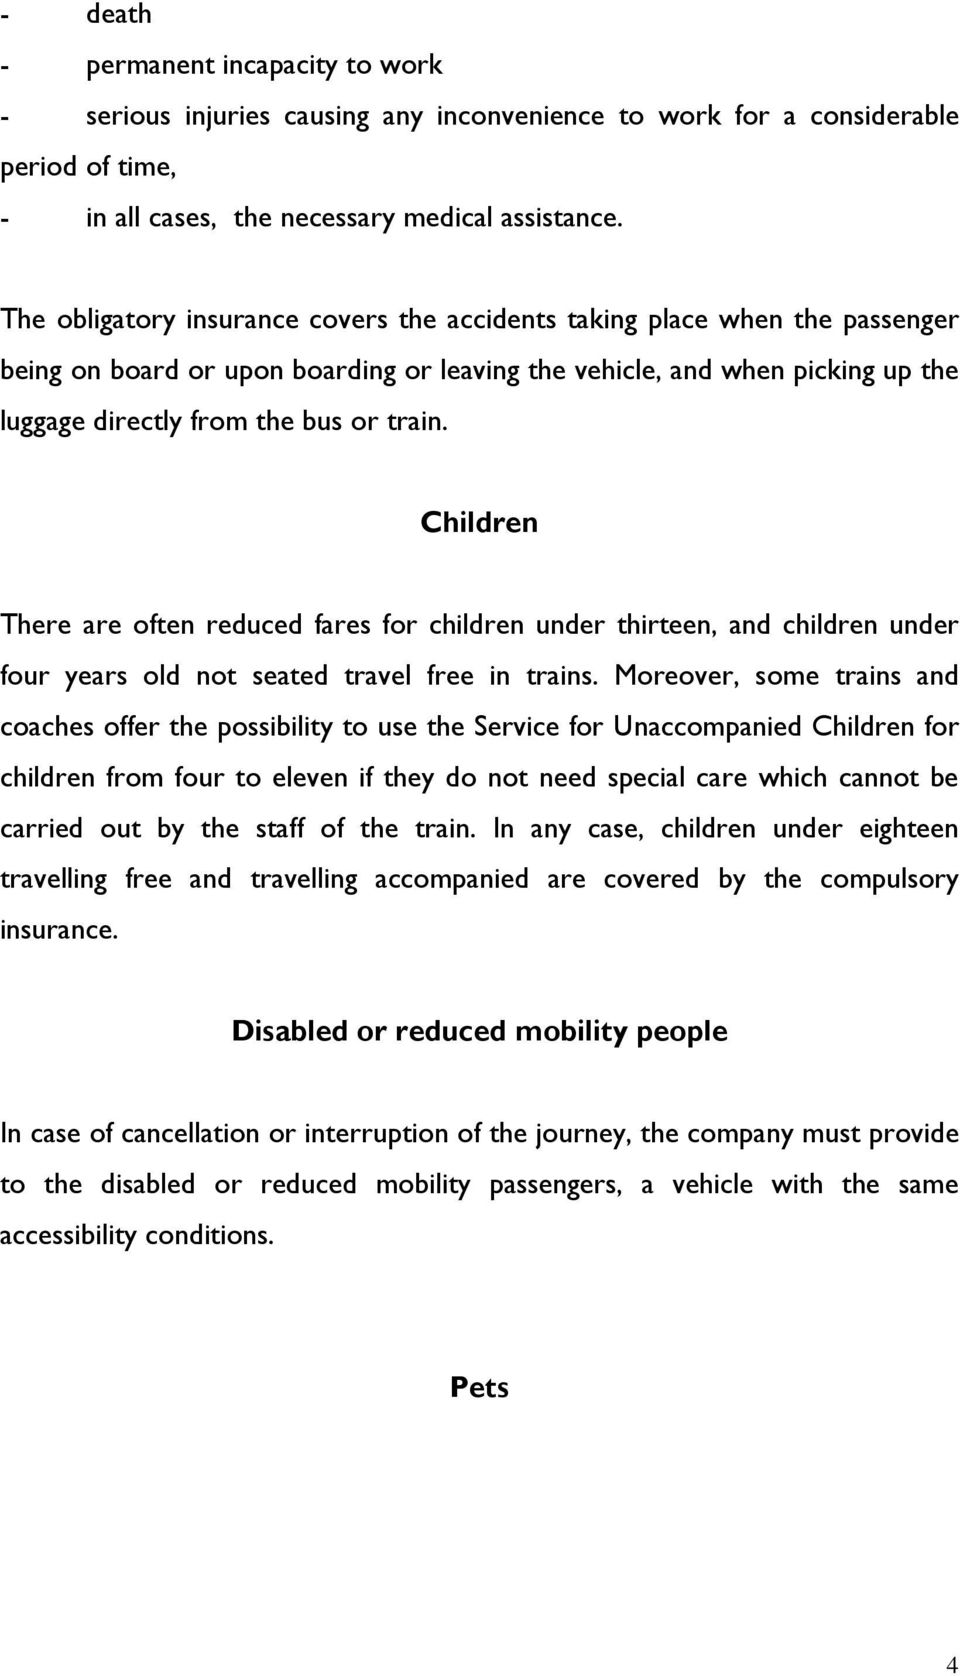 Children There are often reduced fares for children under thirteen, and children under four years old not seated travel free in trains.